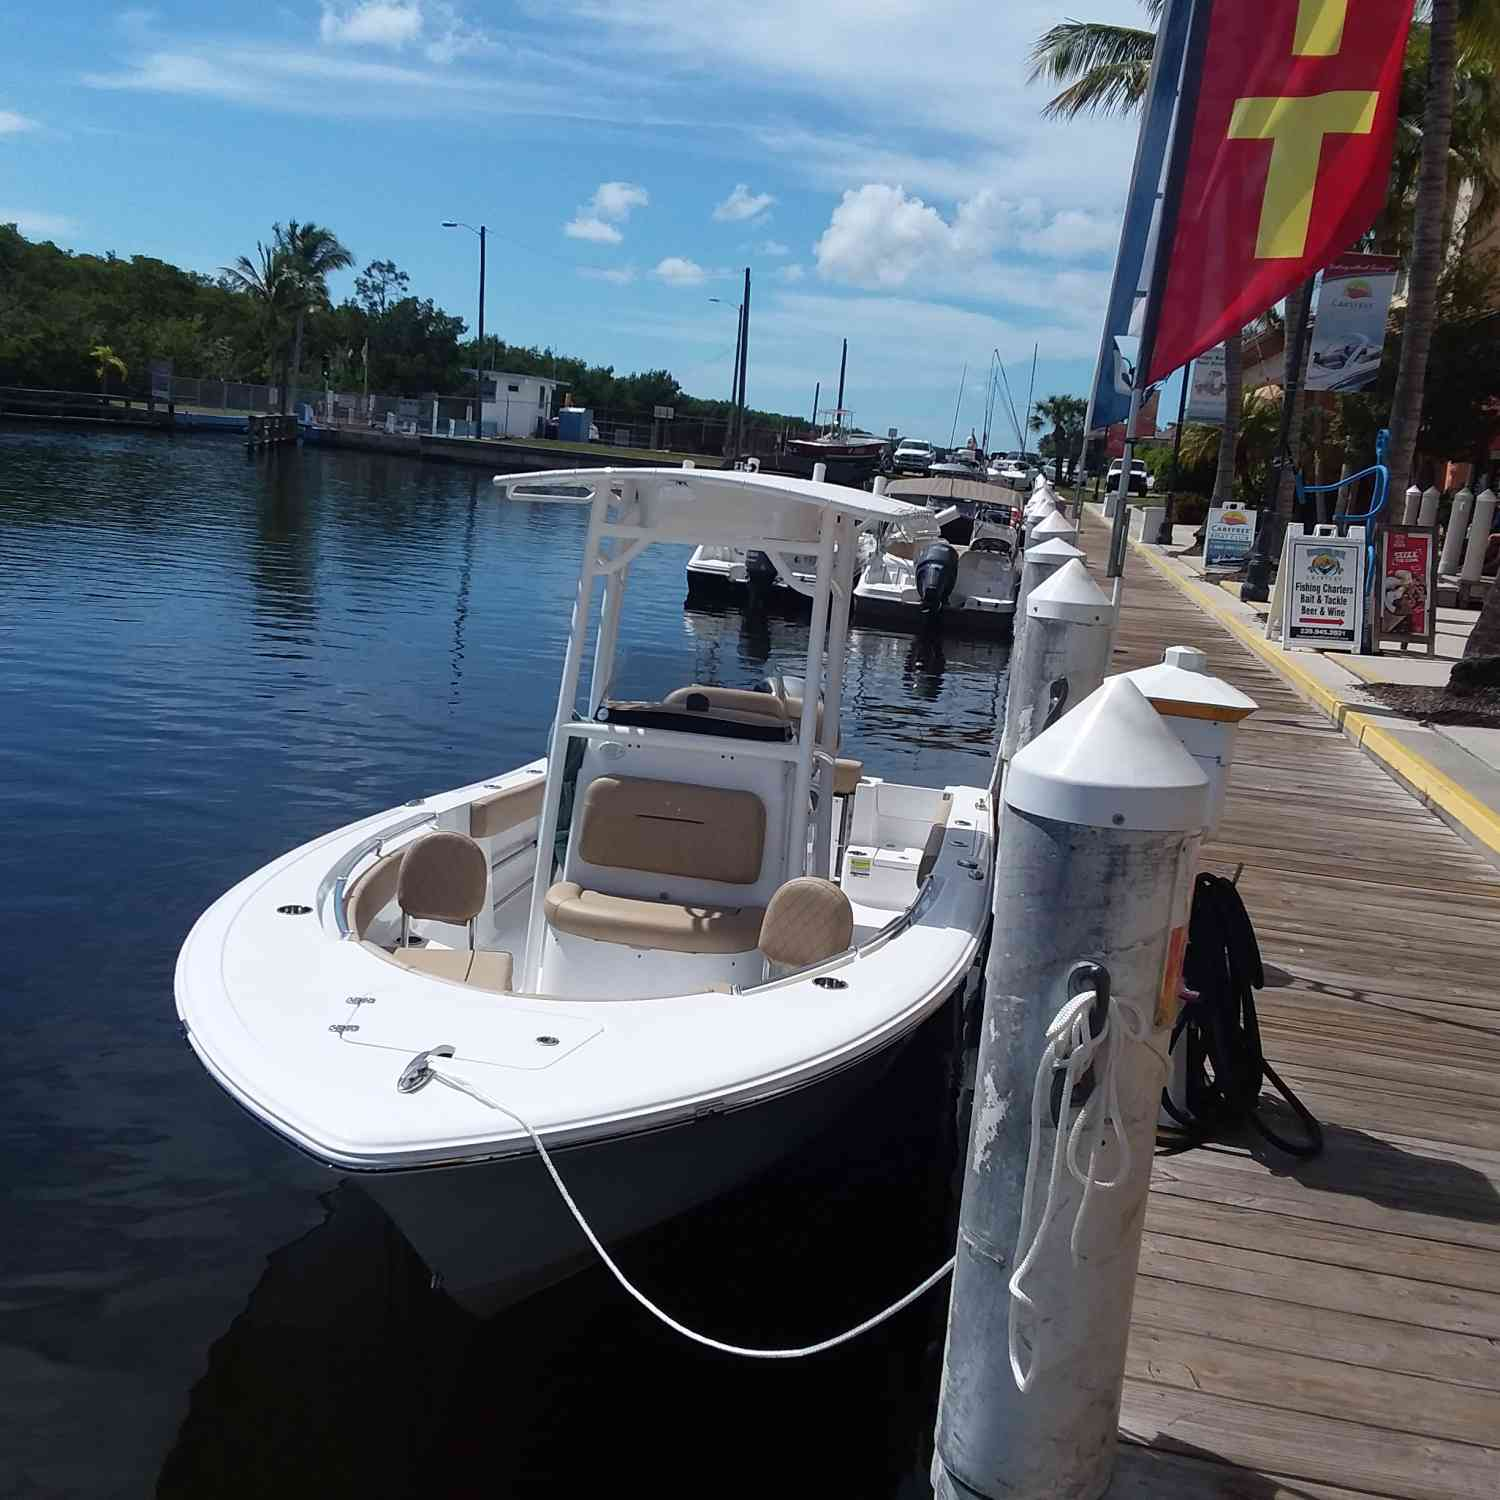 Title: Little beauty at rest - On board their Sportsman Open 212 Center Console - Location: Cape Coral Florida. Participating in the Photo Contest #SportsmanMarch2019